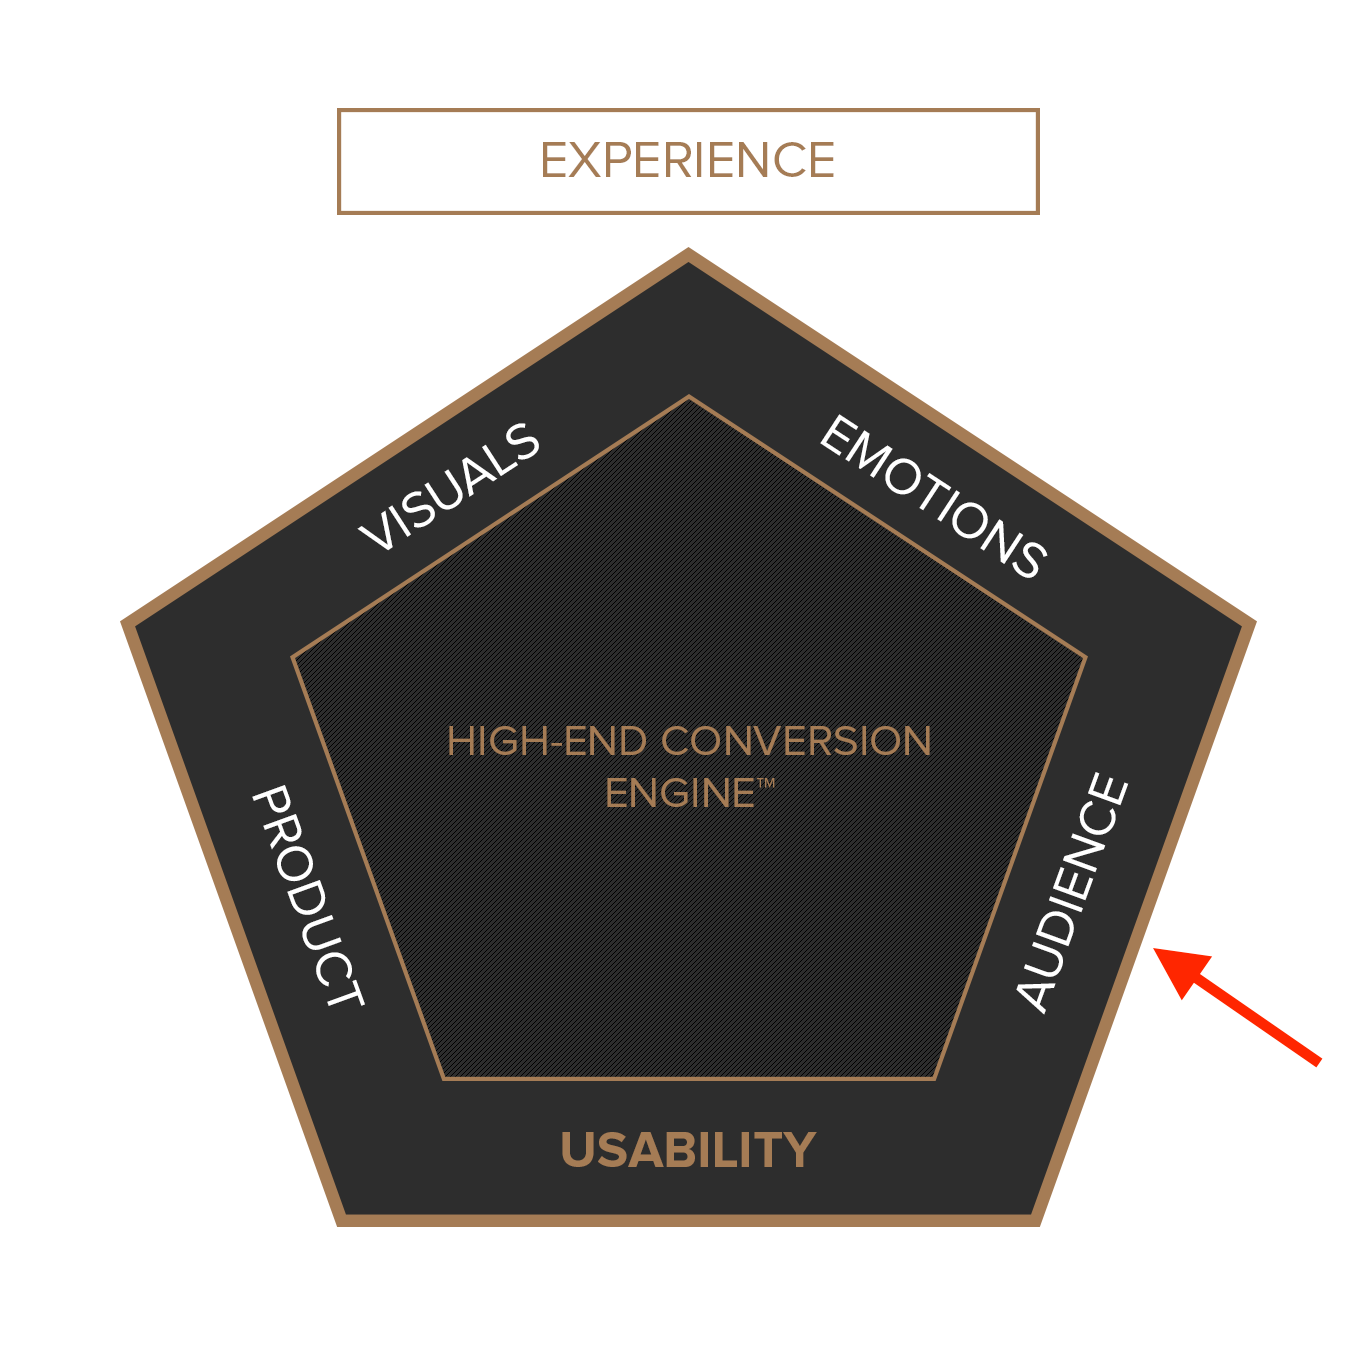 High-End Conversion Engine - Audience